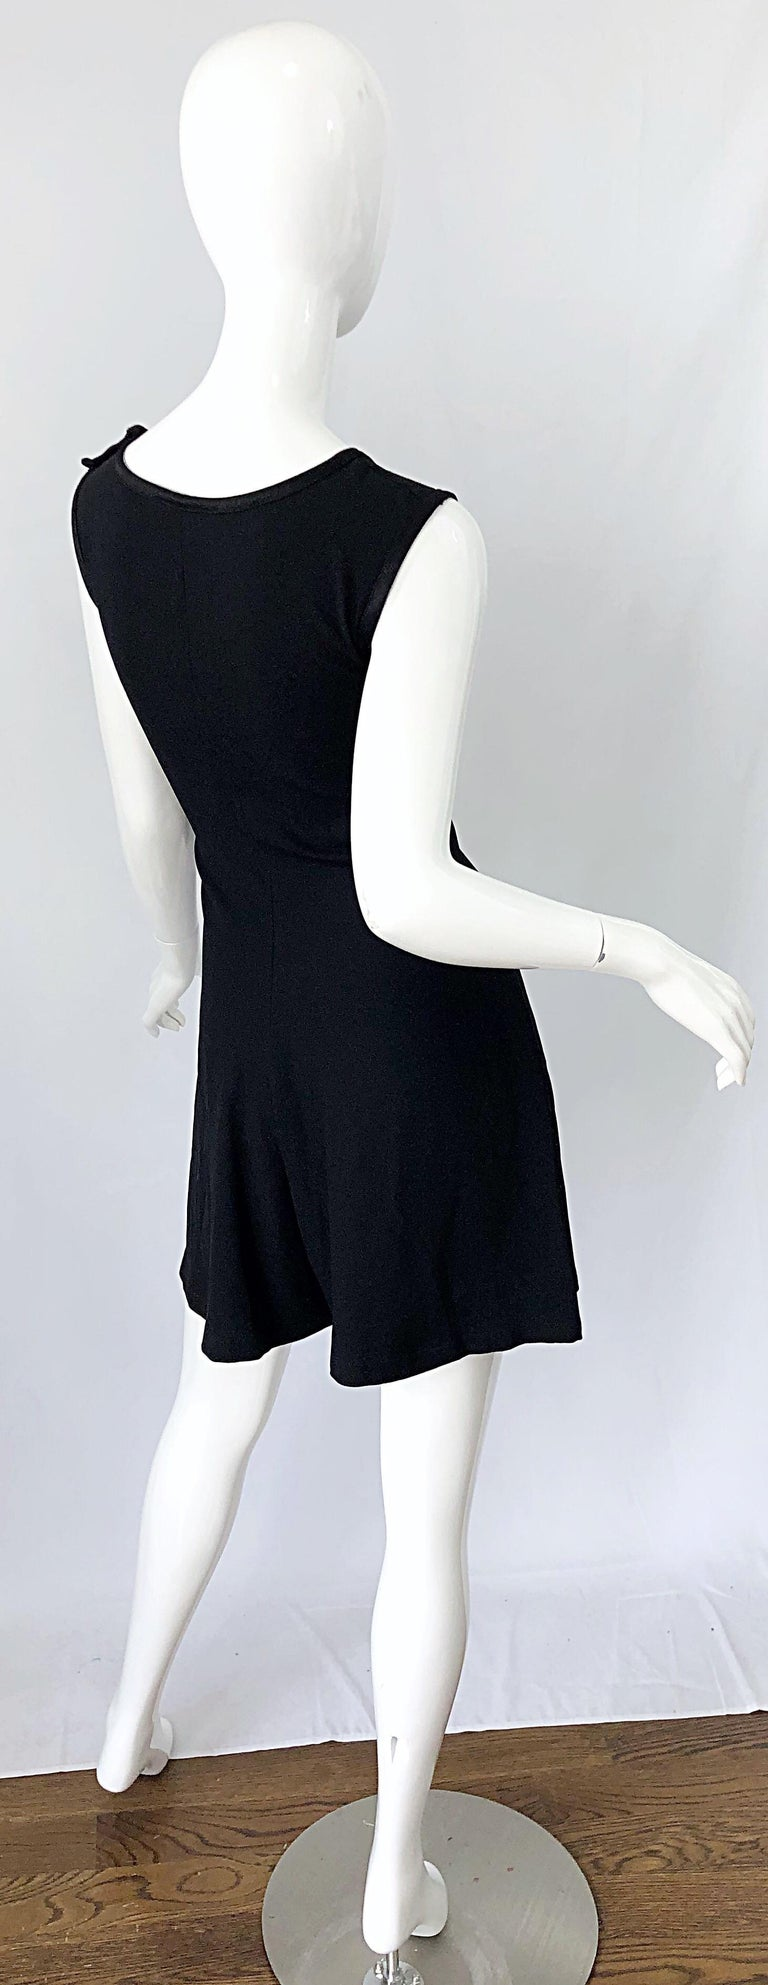 Vintage Yves Saint Laurent Romper Black Rayon Sleeveless 1990s One Piece 90s  For Sale 9